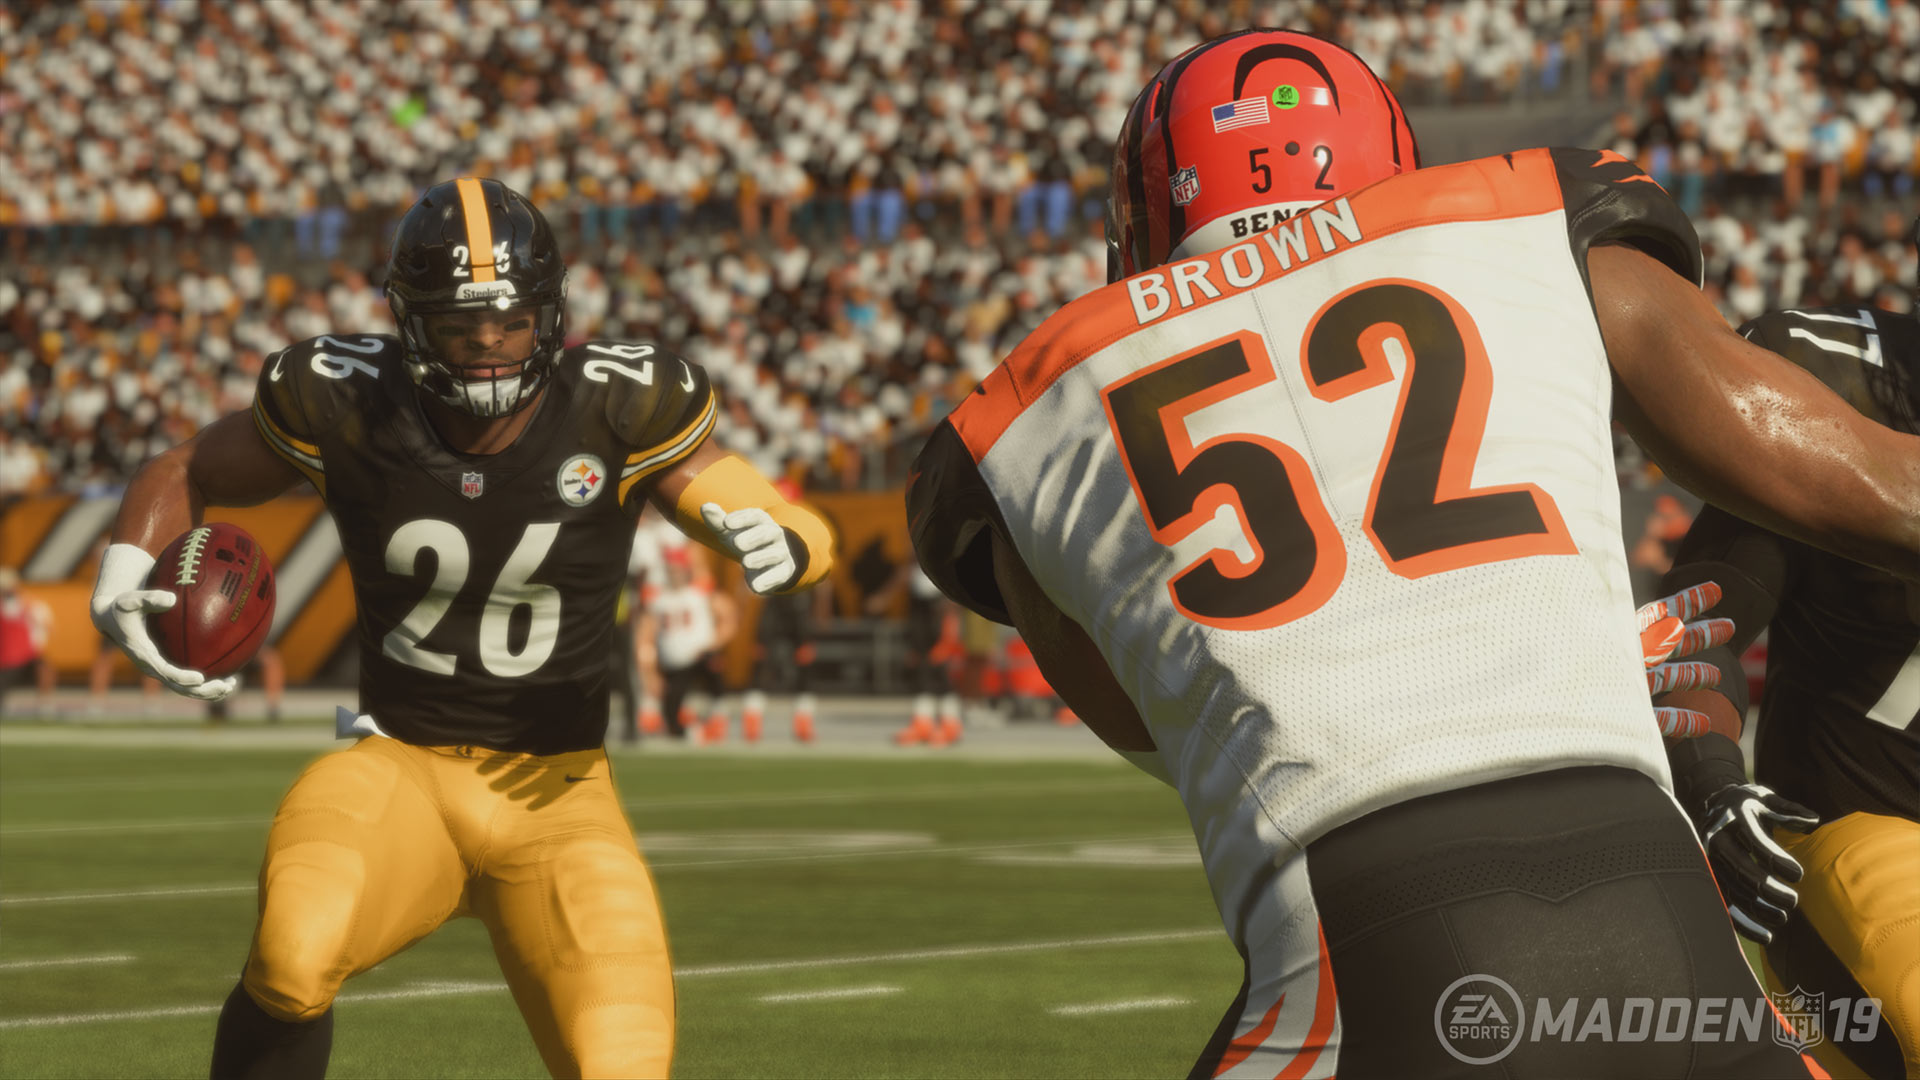 Madden NFL 19 Xbox Screenshot